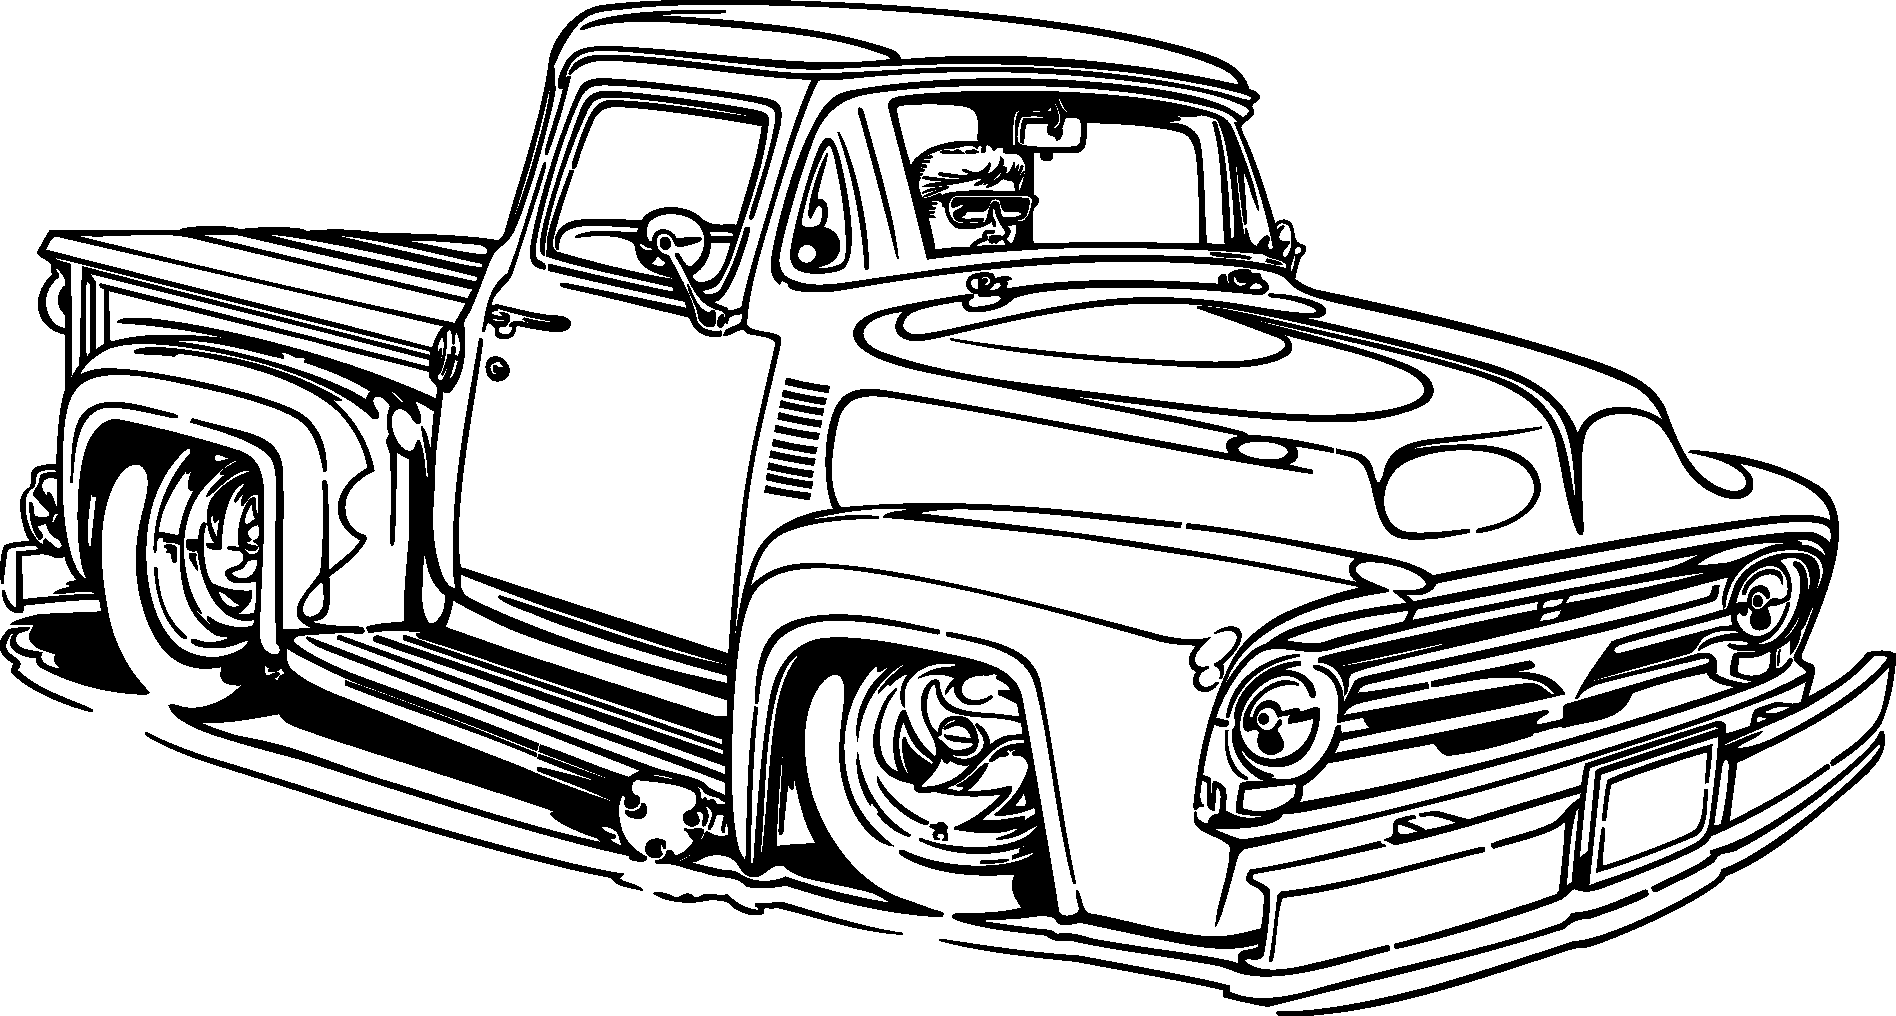 Old Car Silhouette At Getdrawings